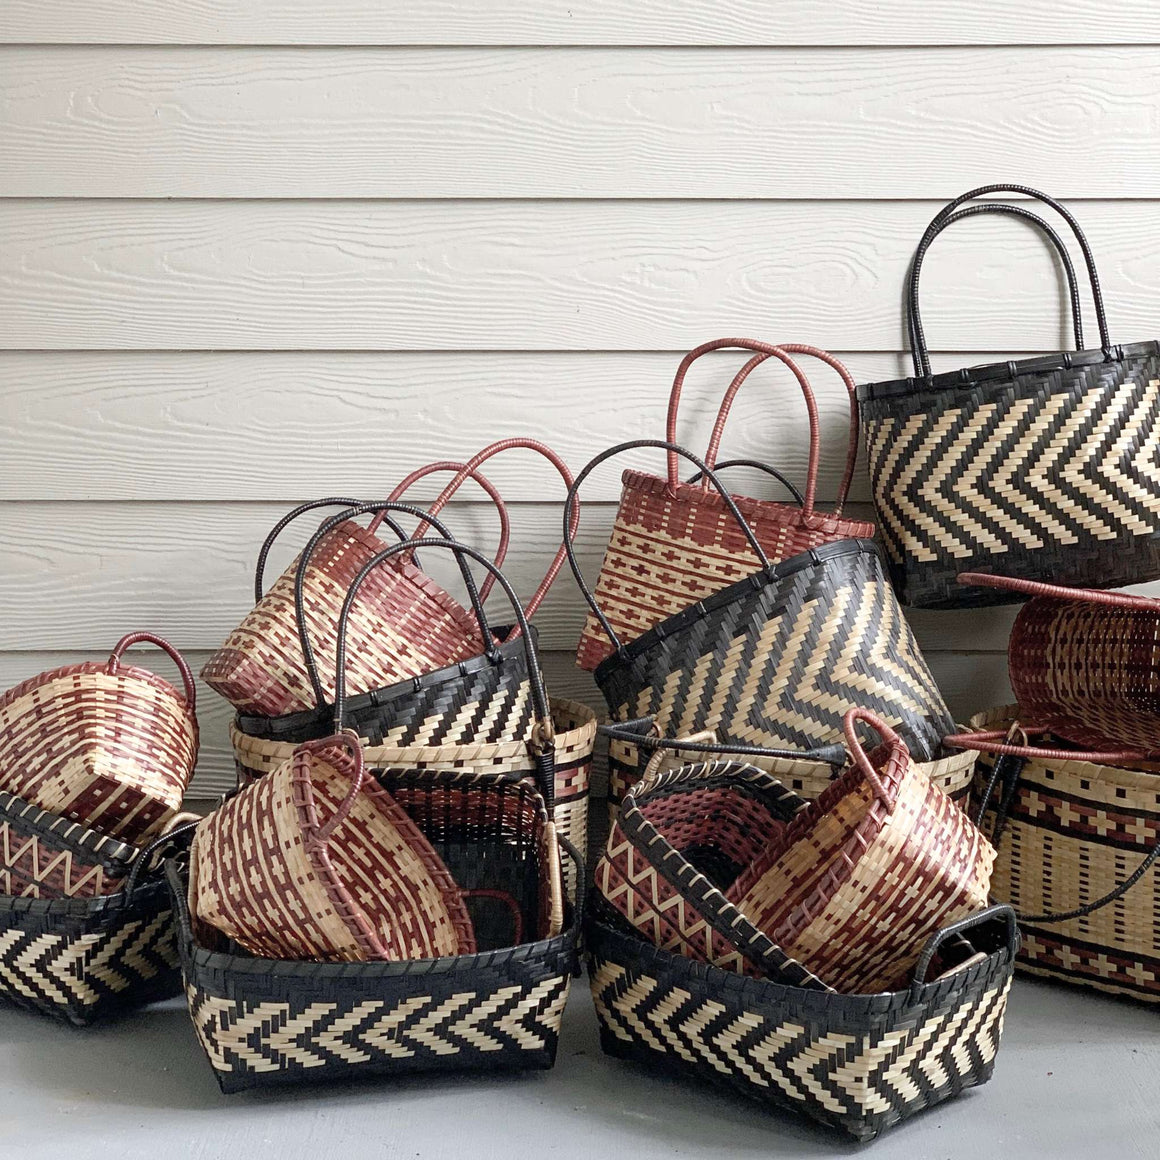 A handwoven bamboo decorative basket that doubles up as great storage organizers for the linen closet or laundry room. Also great as a decor accent for styling bedroom shelves. Crafted for Ginger Sparrow a modern artisan made home decor brand. #livignroomdecor #shelfie #shelfbasket #bedroomdesign